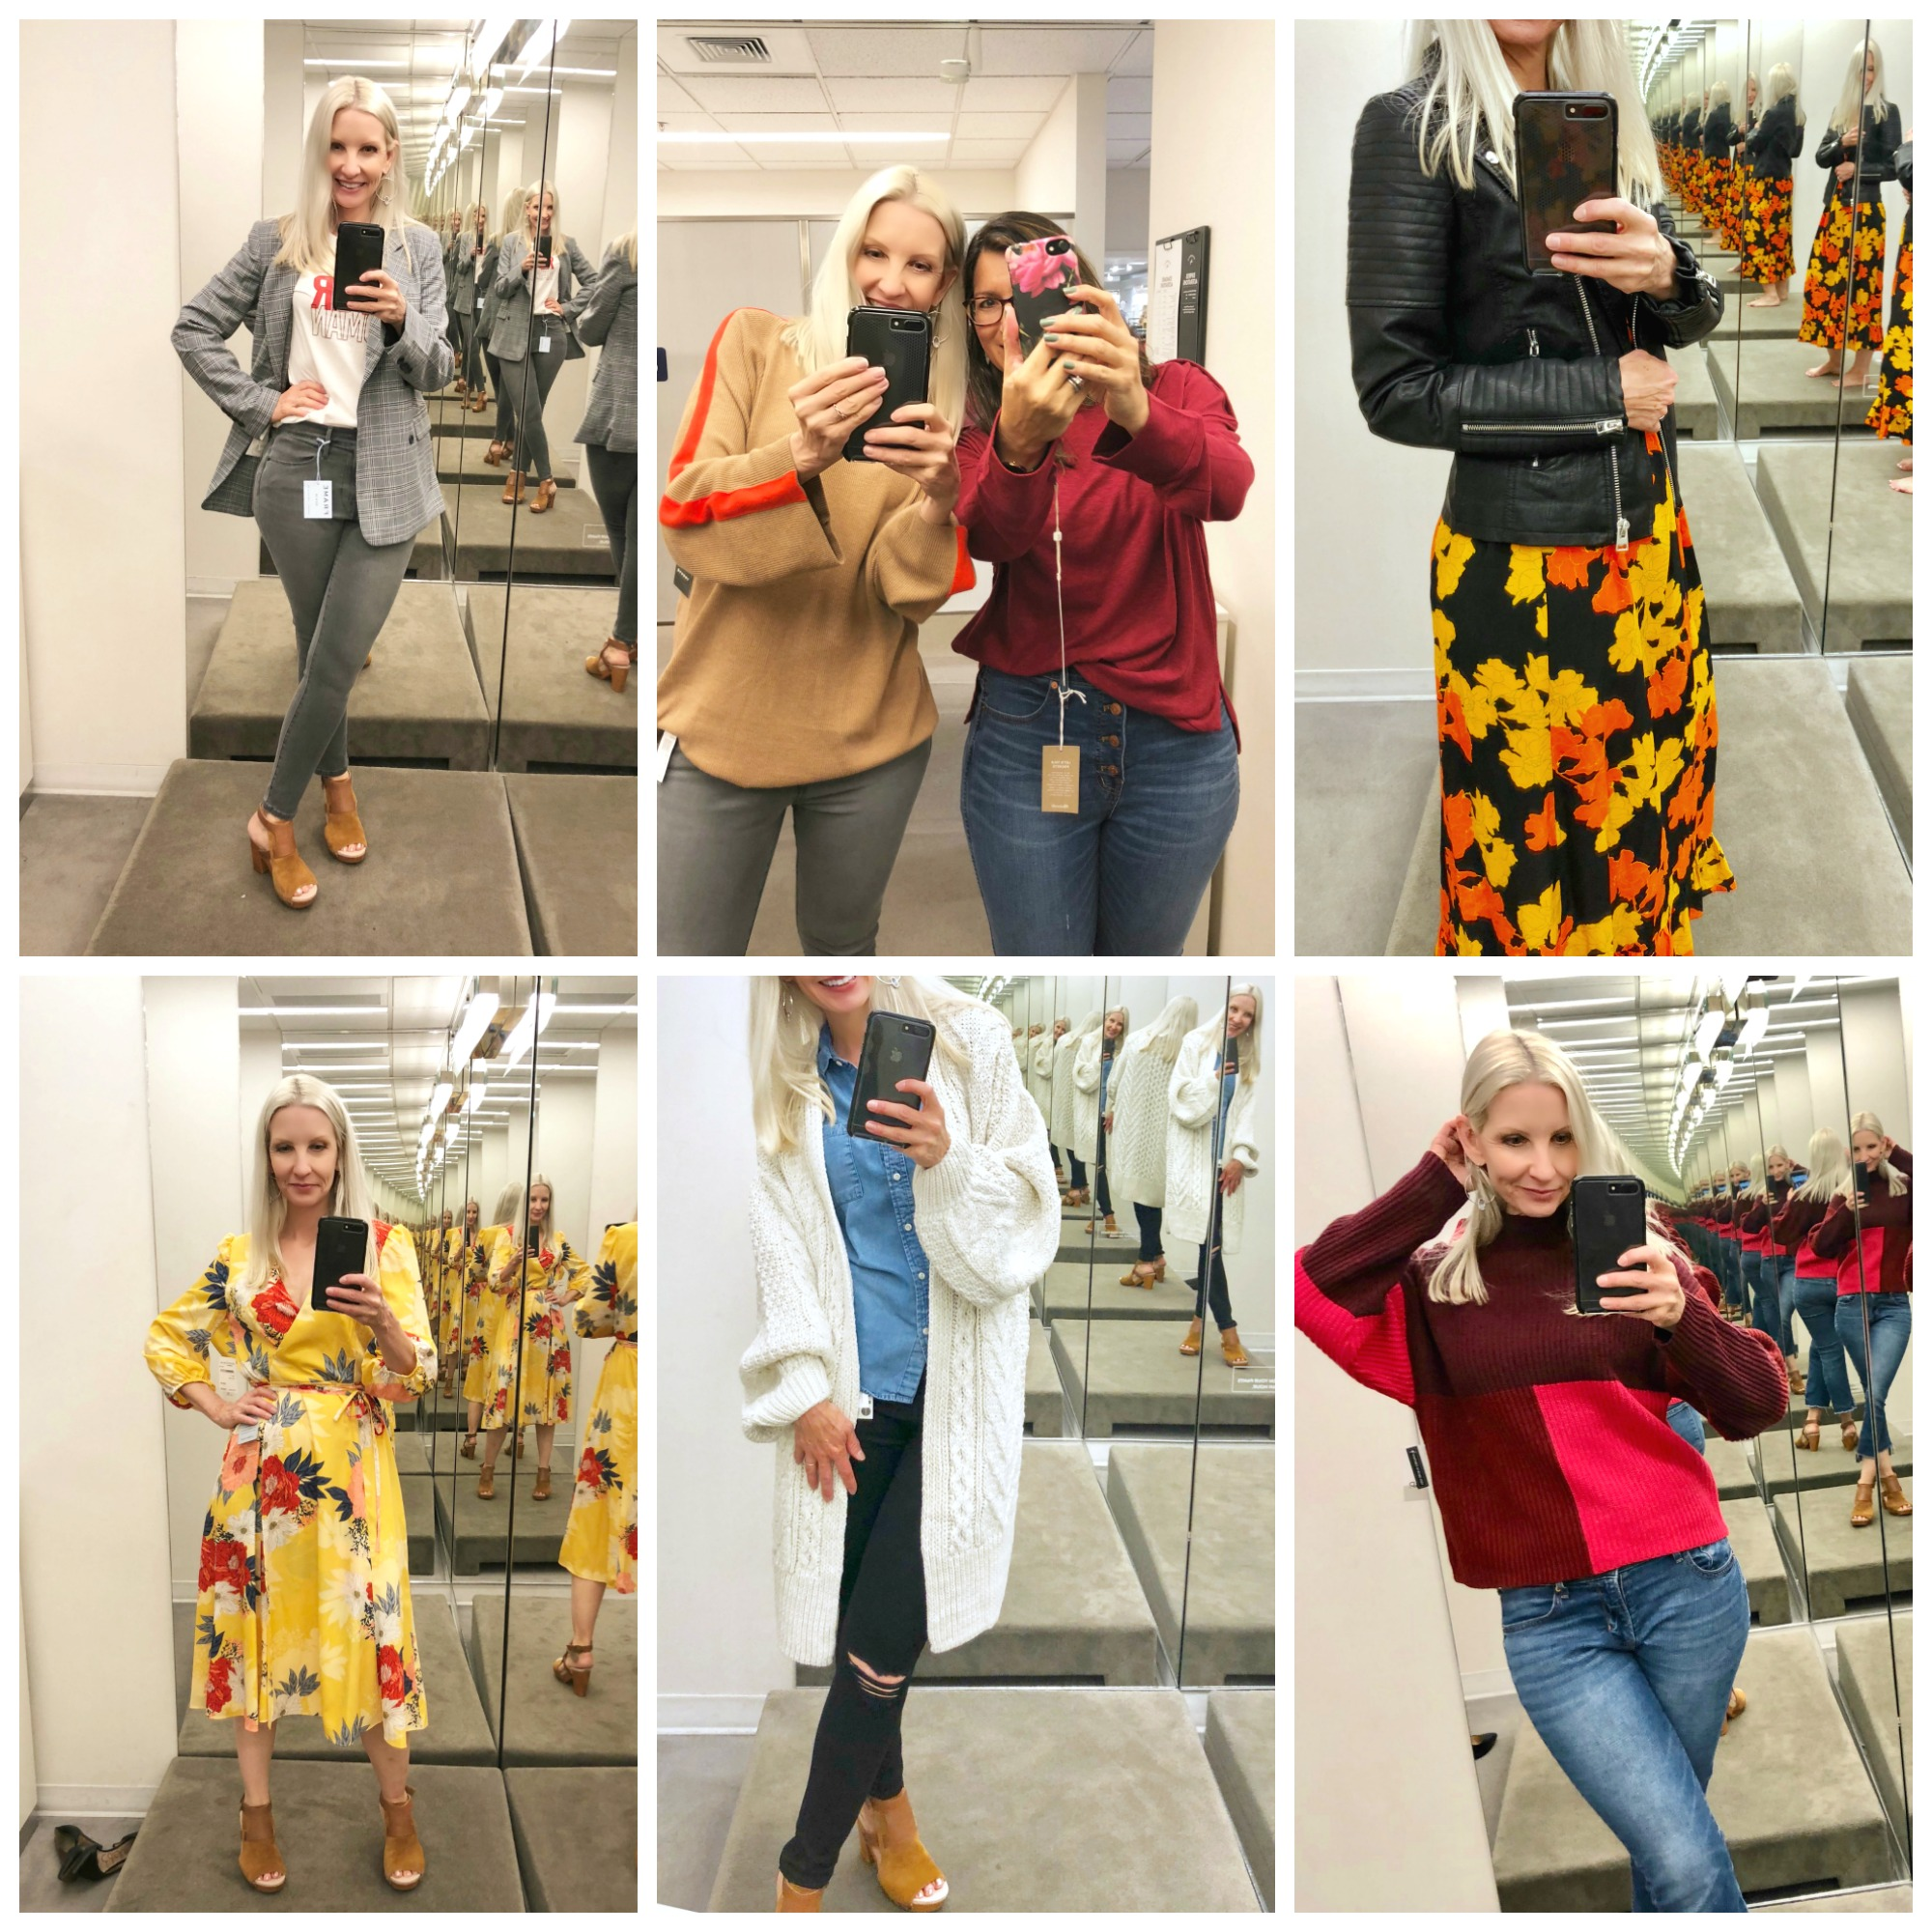 413e6a7af5e Nordstrom Anniversary Sale Dressing Room Selfies 2018! - Fashion ...